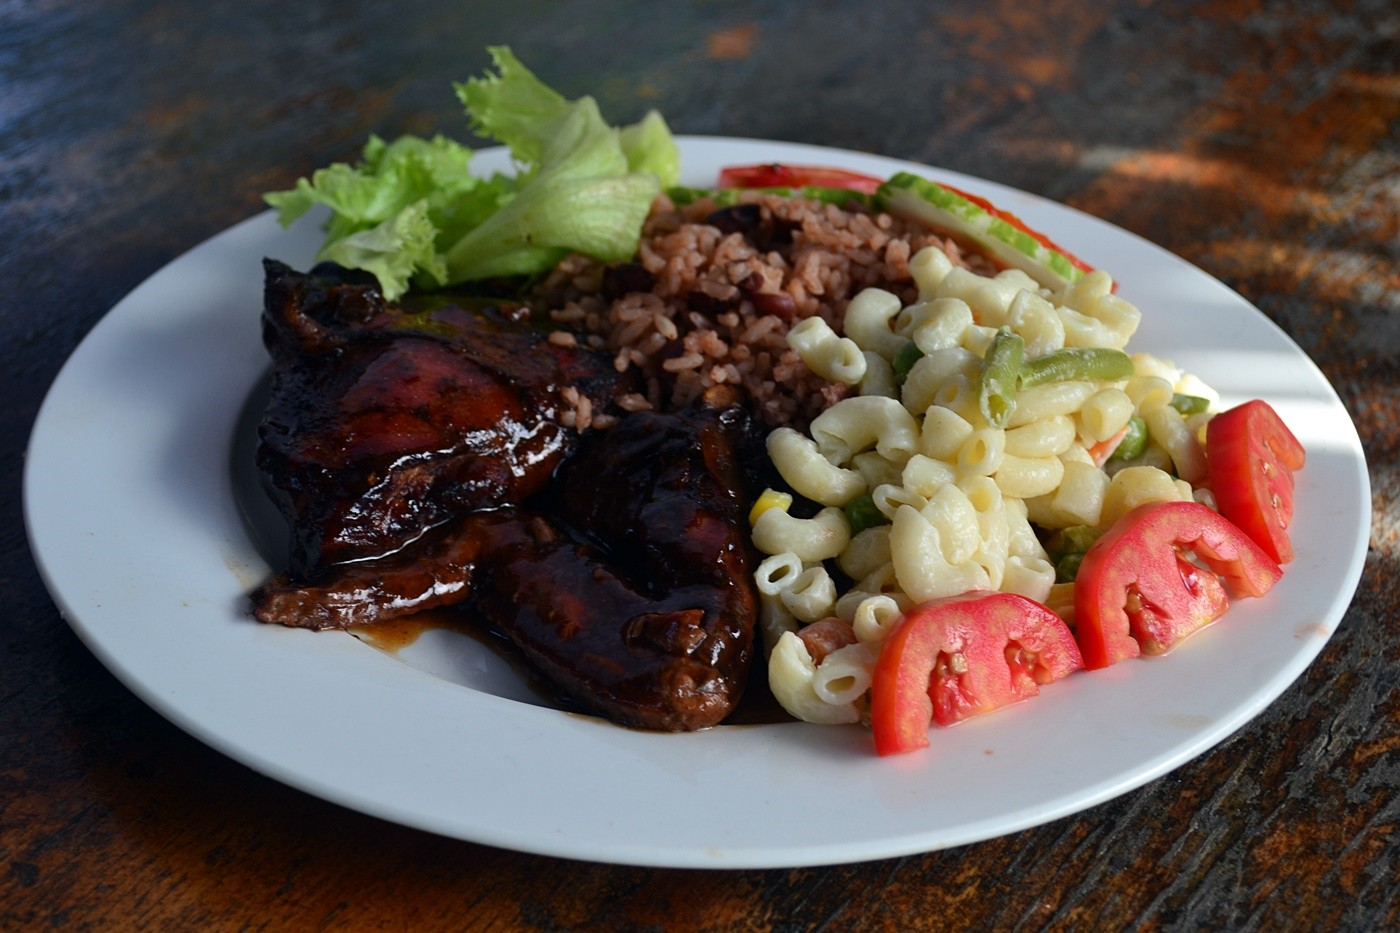 Pepper 39 s jerk center authentic jamaican restaurant for Authentic jamaican cuisine